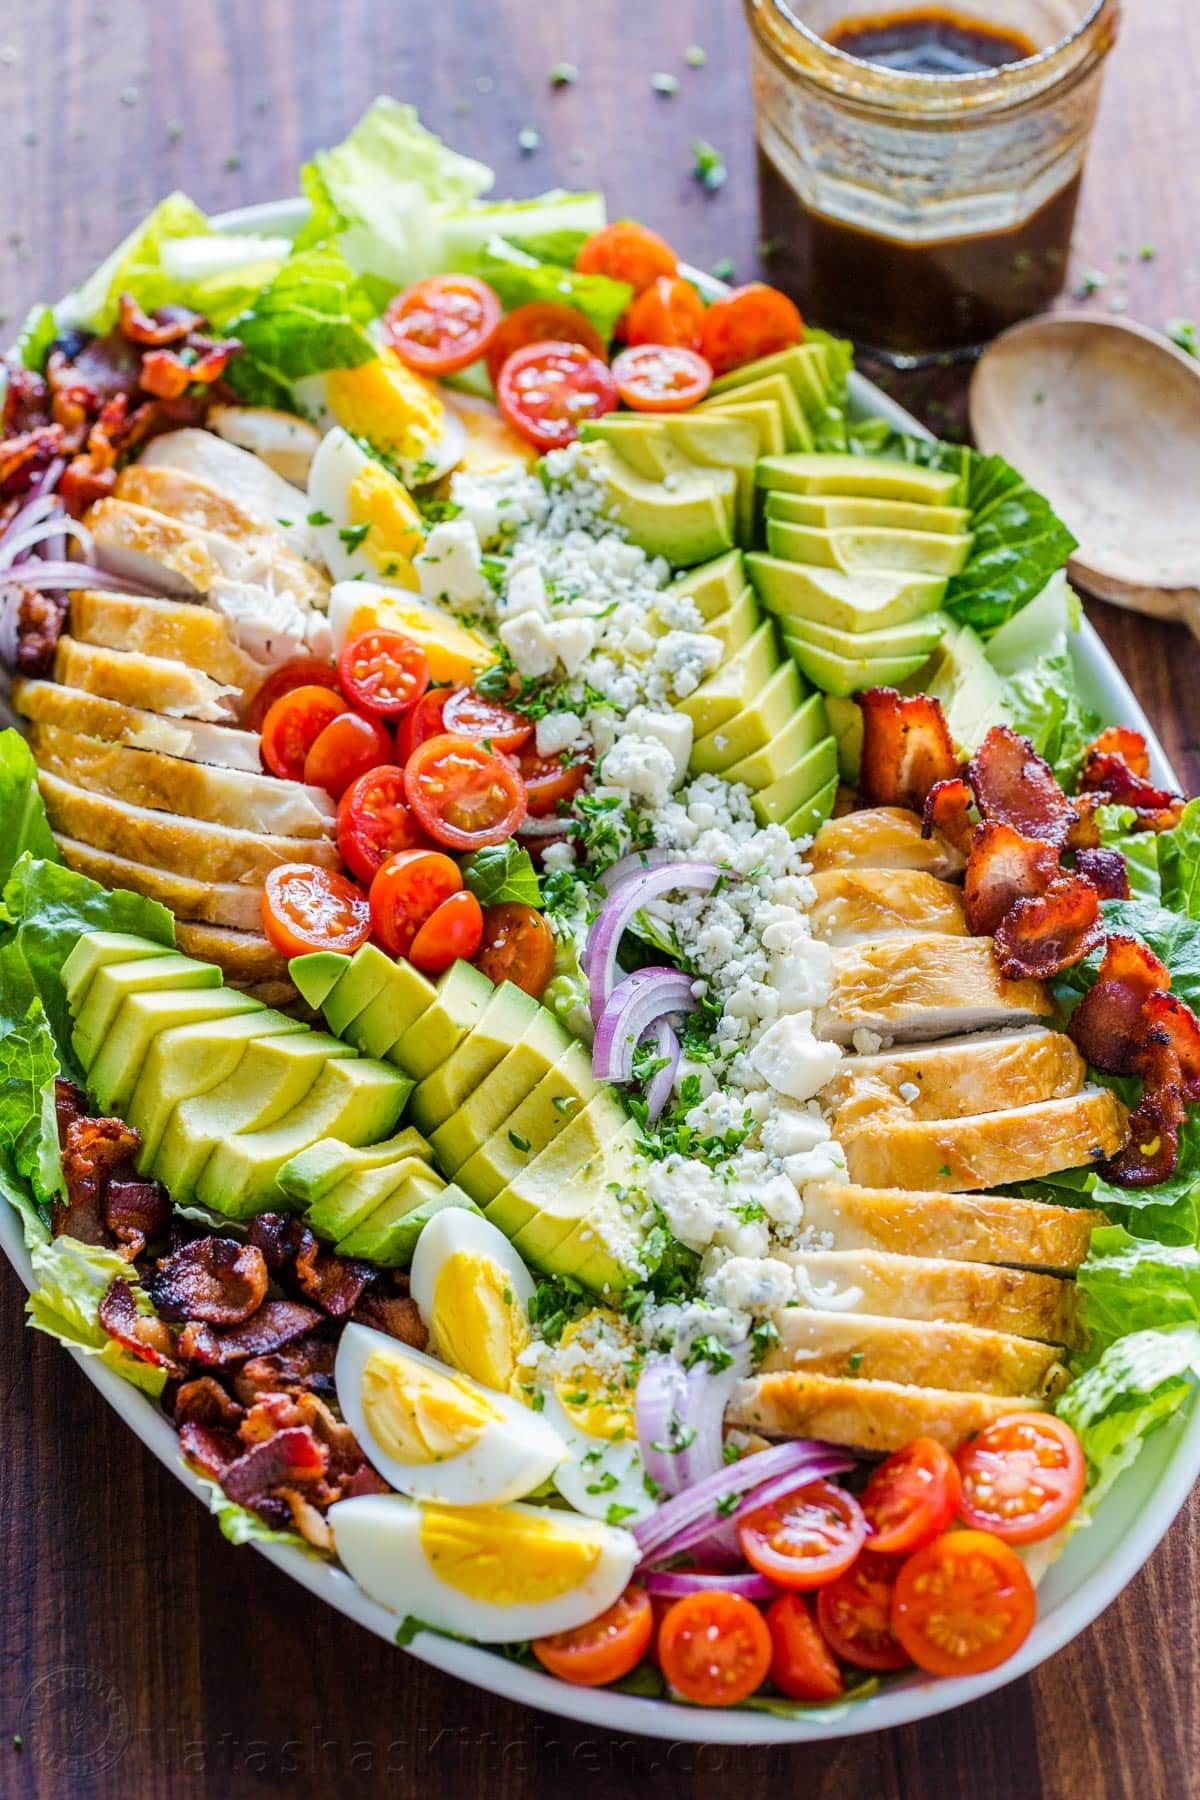 Easy Chicken Cobb Salad with the Best Cobb Salad Dressing! A protein-packed salad loaded with crisp lettuce, tomatoes, chicken, avocado and blue cheese. #cobbsalad #cobbsaladrecipe #easycobbsalad #bestcobbsalad #saladrecipes #salad #natashaskitchen